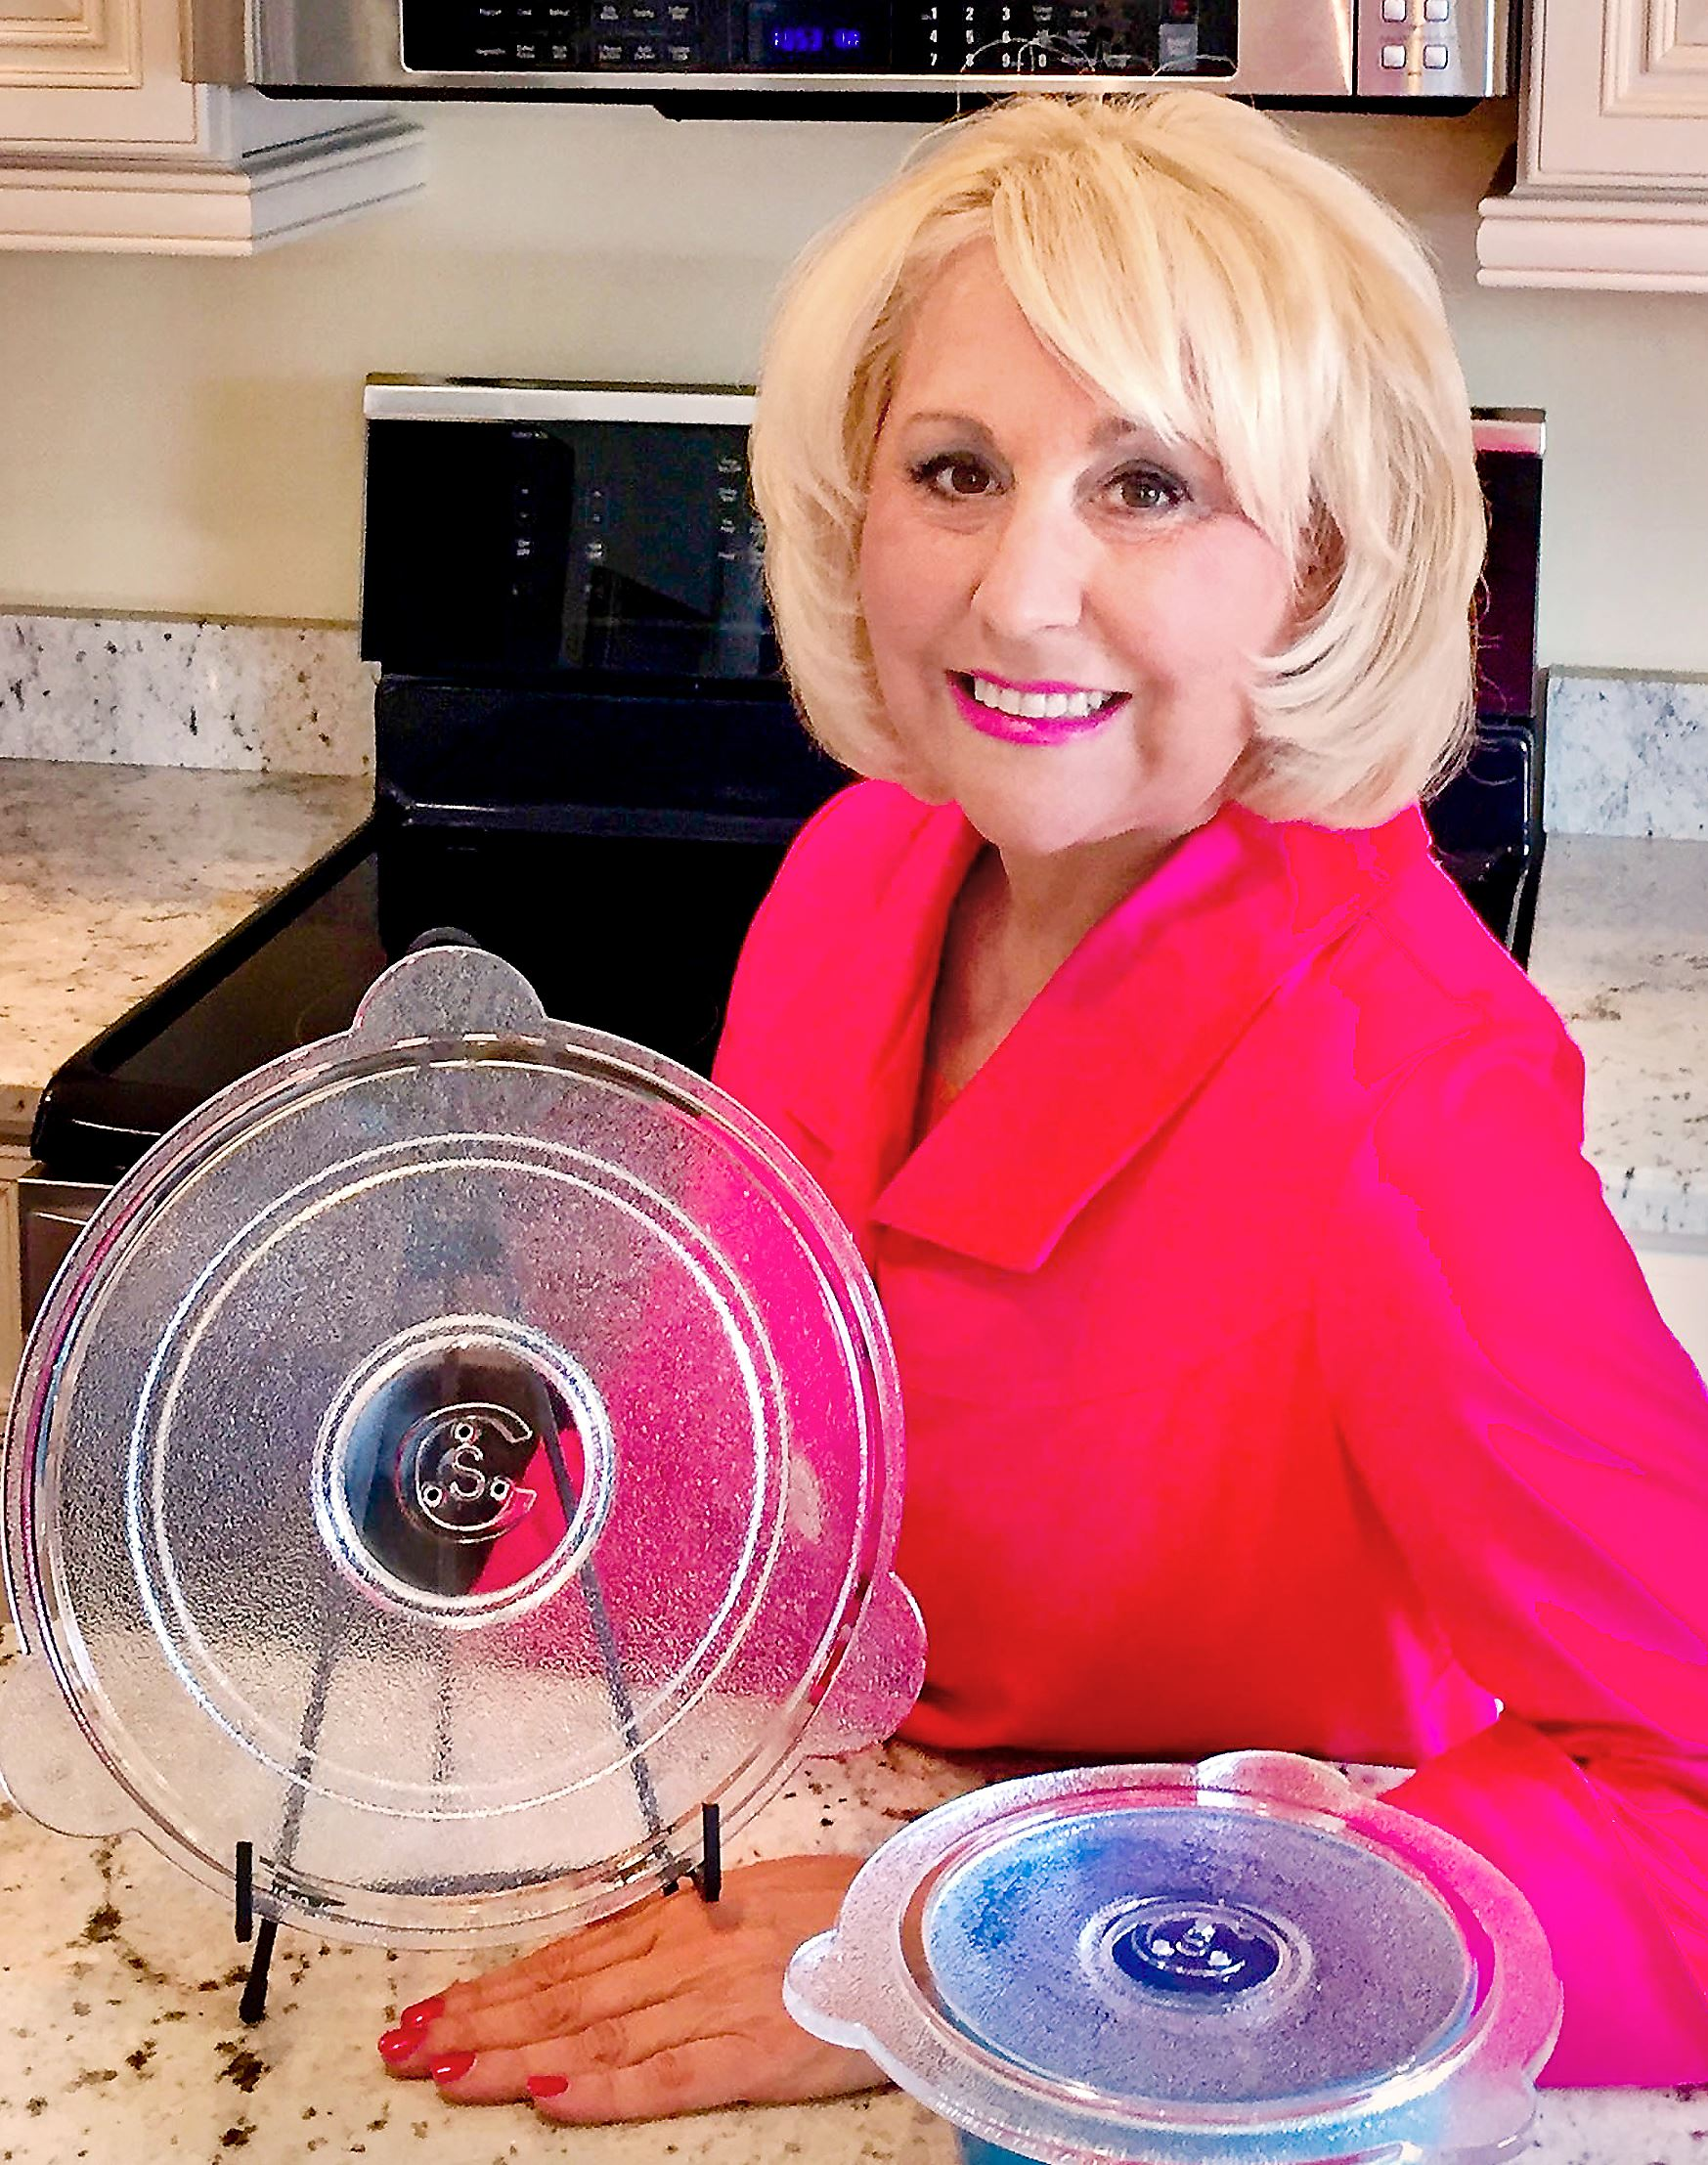 qvclady0127 Susan Castriota of Upper St. Clair with the Cuchina Safe Universal Glass lid she invented and will sell on QVC.